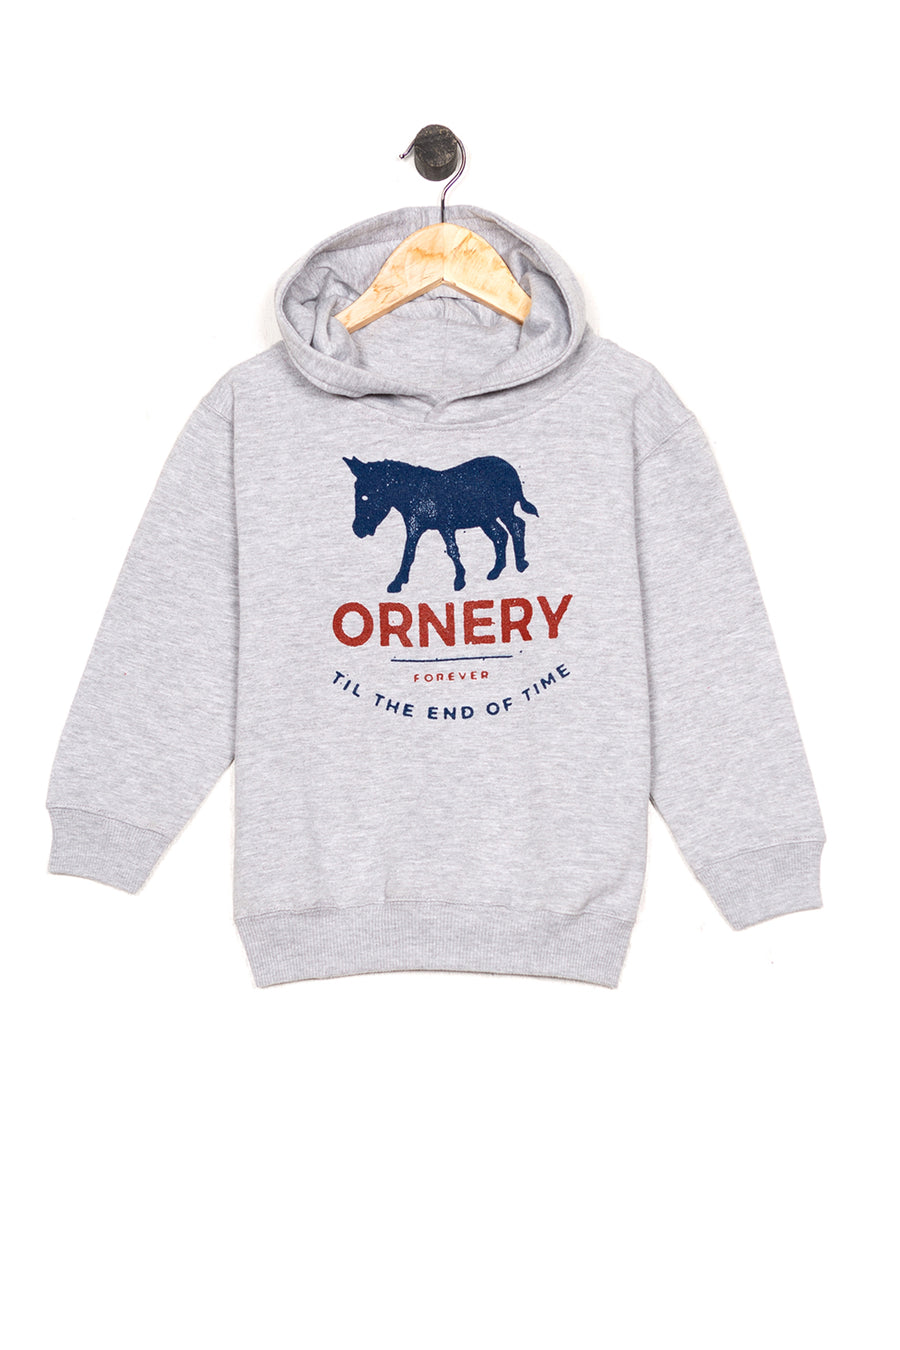 ornery kids hoodie, final sale